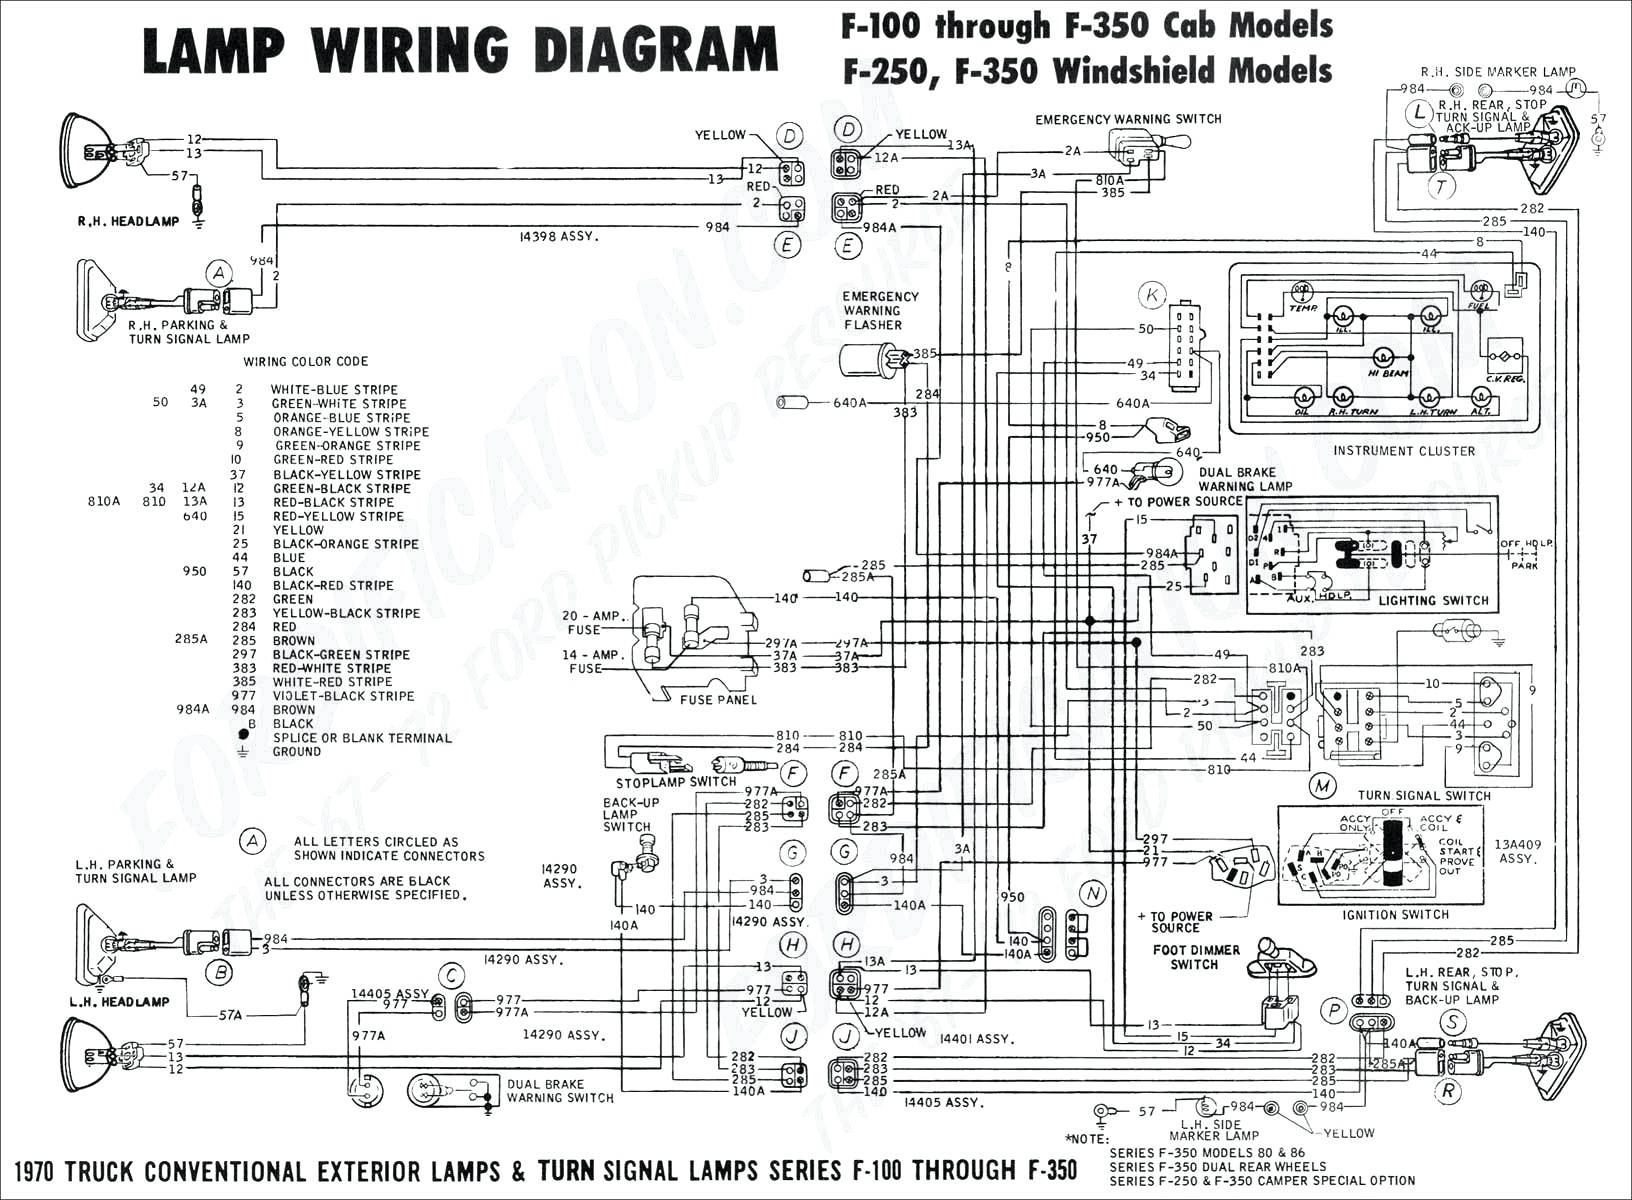 Wiring Diagram For Bose Earbud 30 Images 2005 Viking Pop Up Camper On Range Wire Rh Inspeere